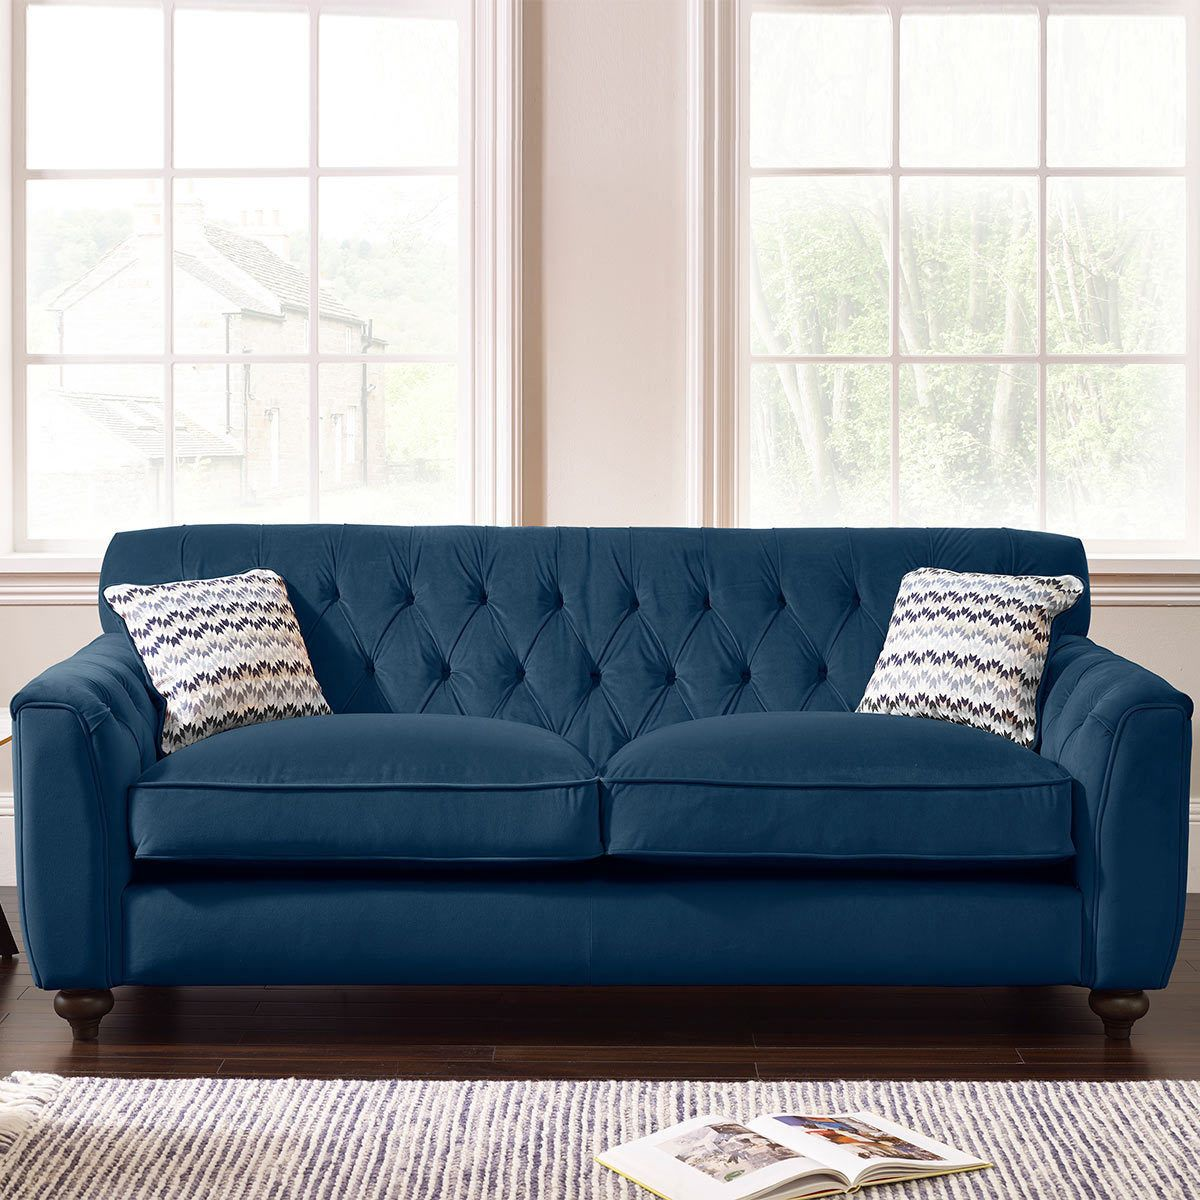 Avante Button Back 3 Seater Velvet Sofa with 2 Accent